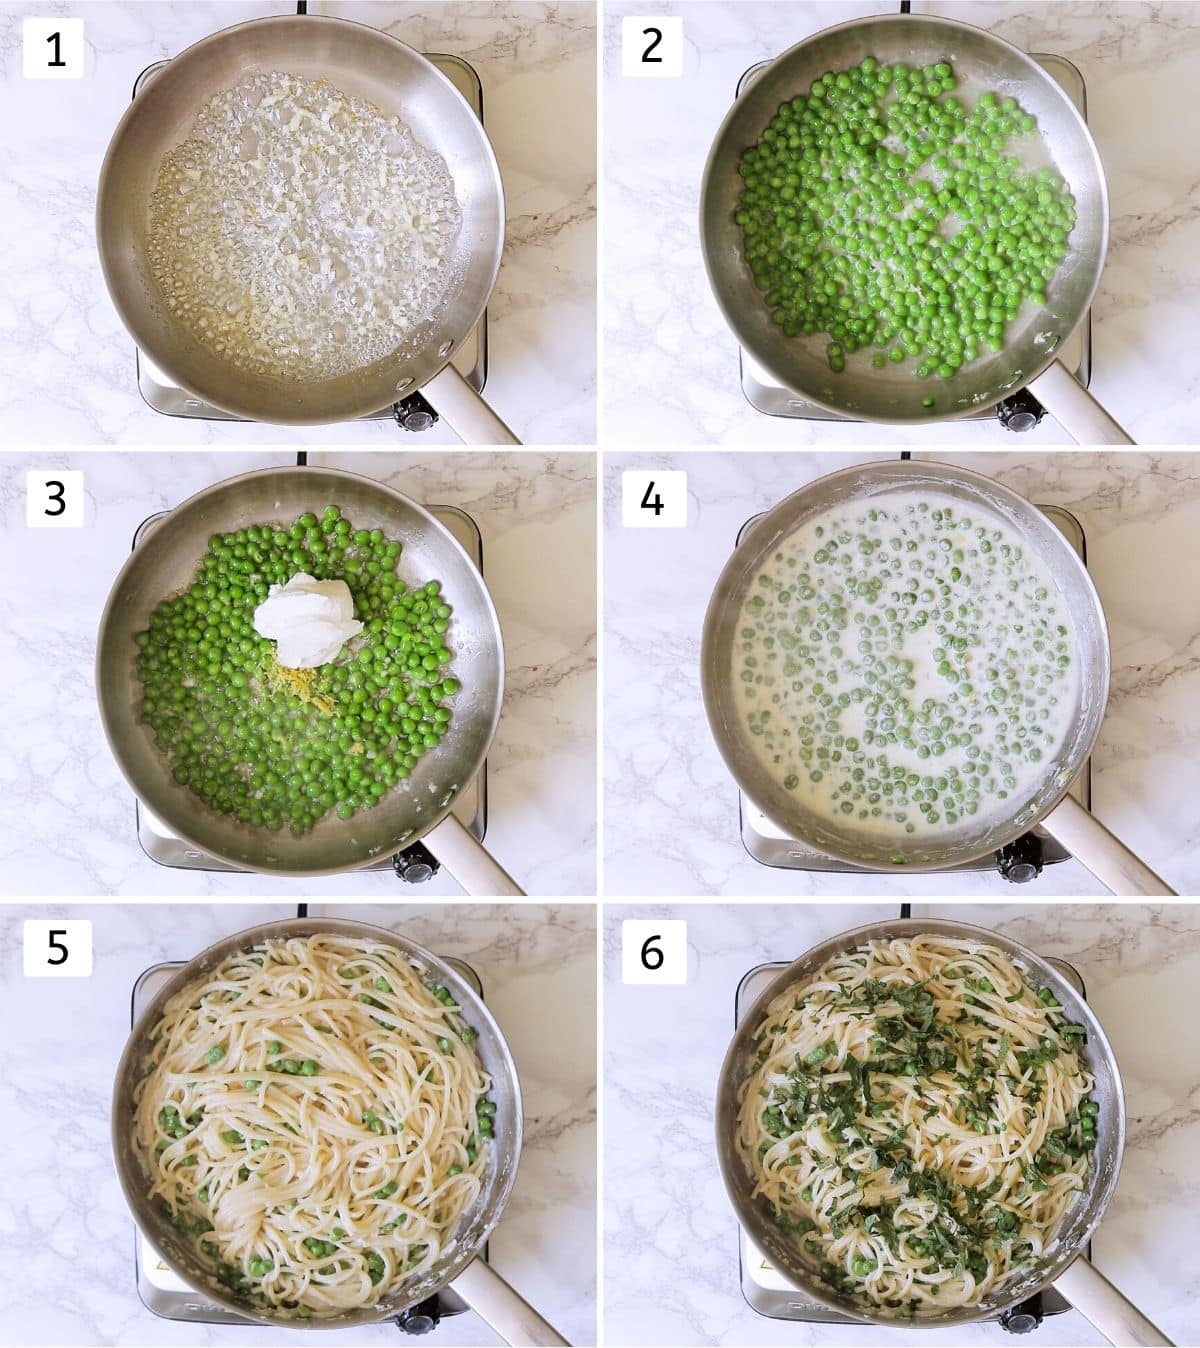 steps of making pasta with peas and ricotta